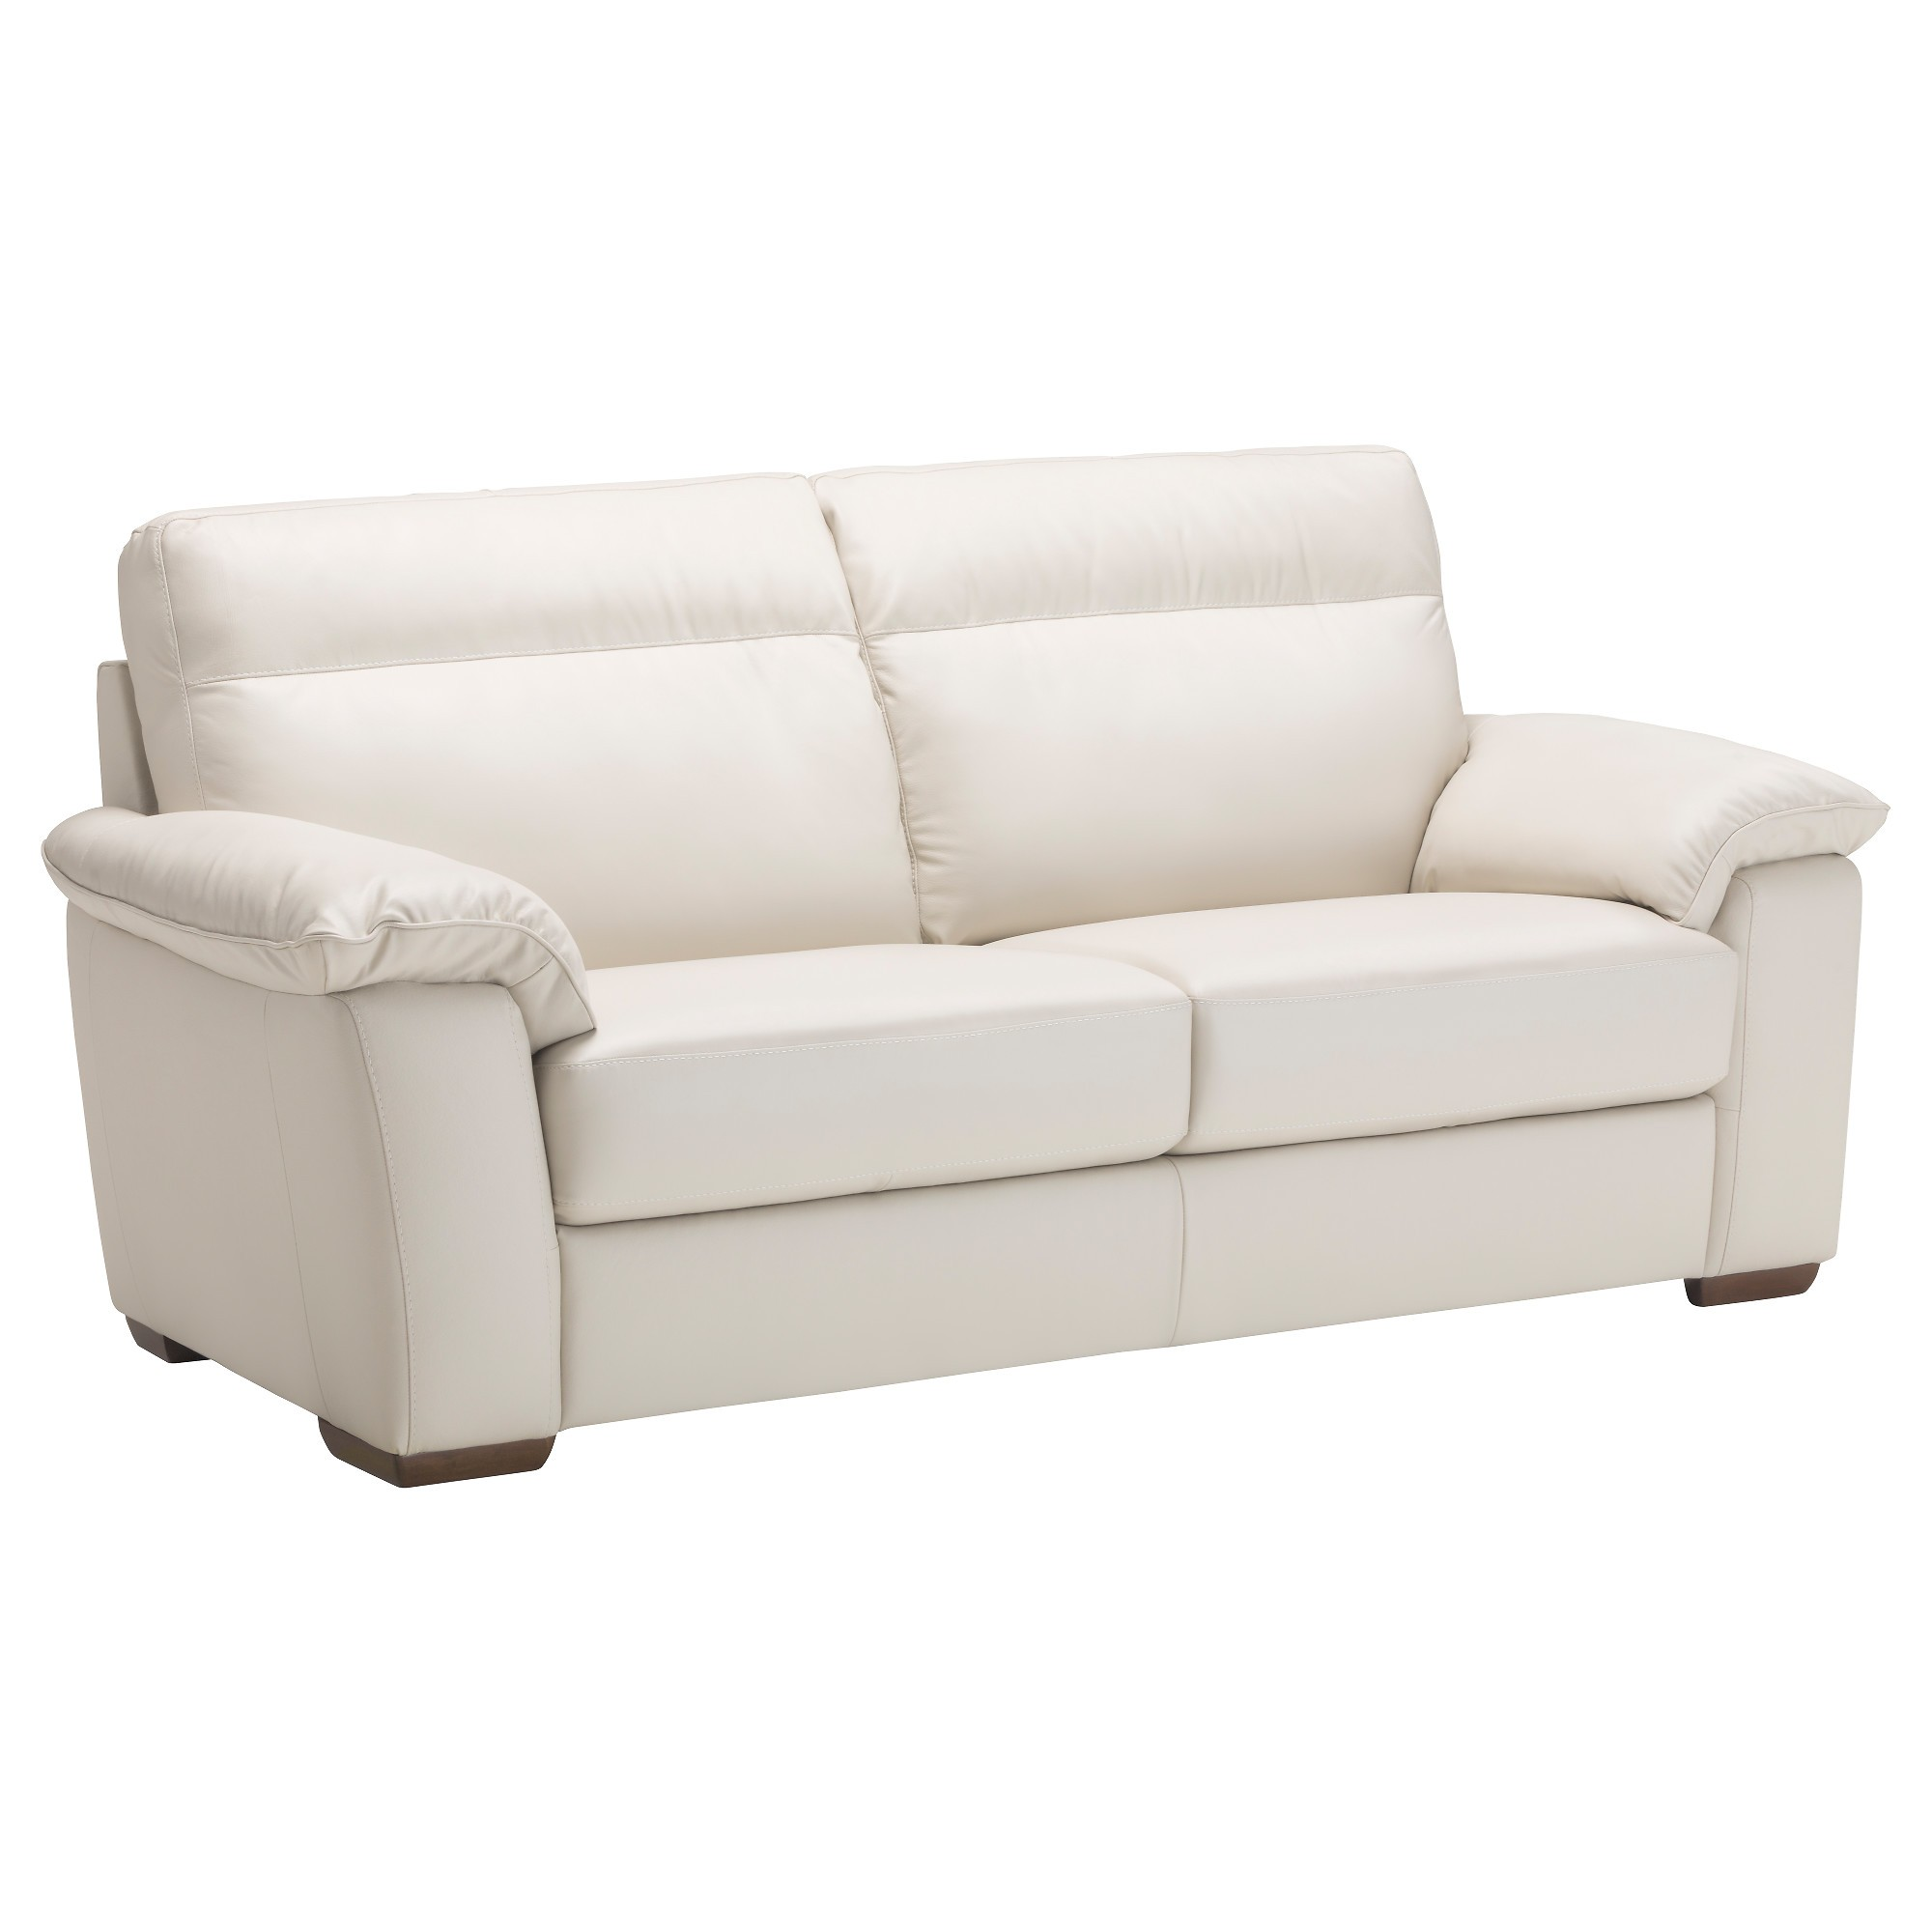 Canape cuir convertible 3 places ikea canap id es de for Convertible 3 places